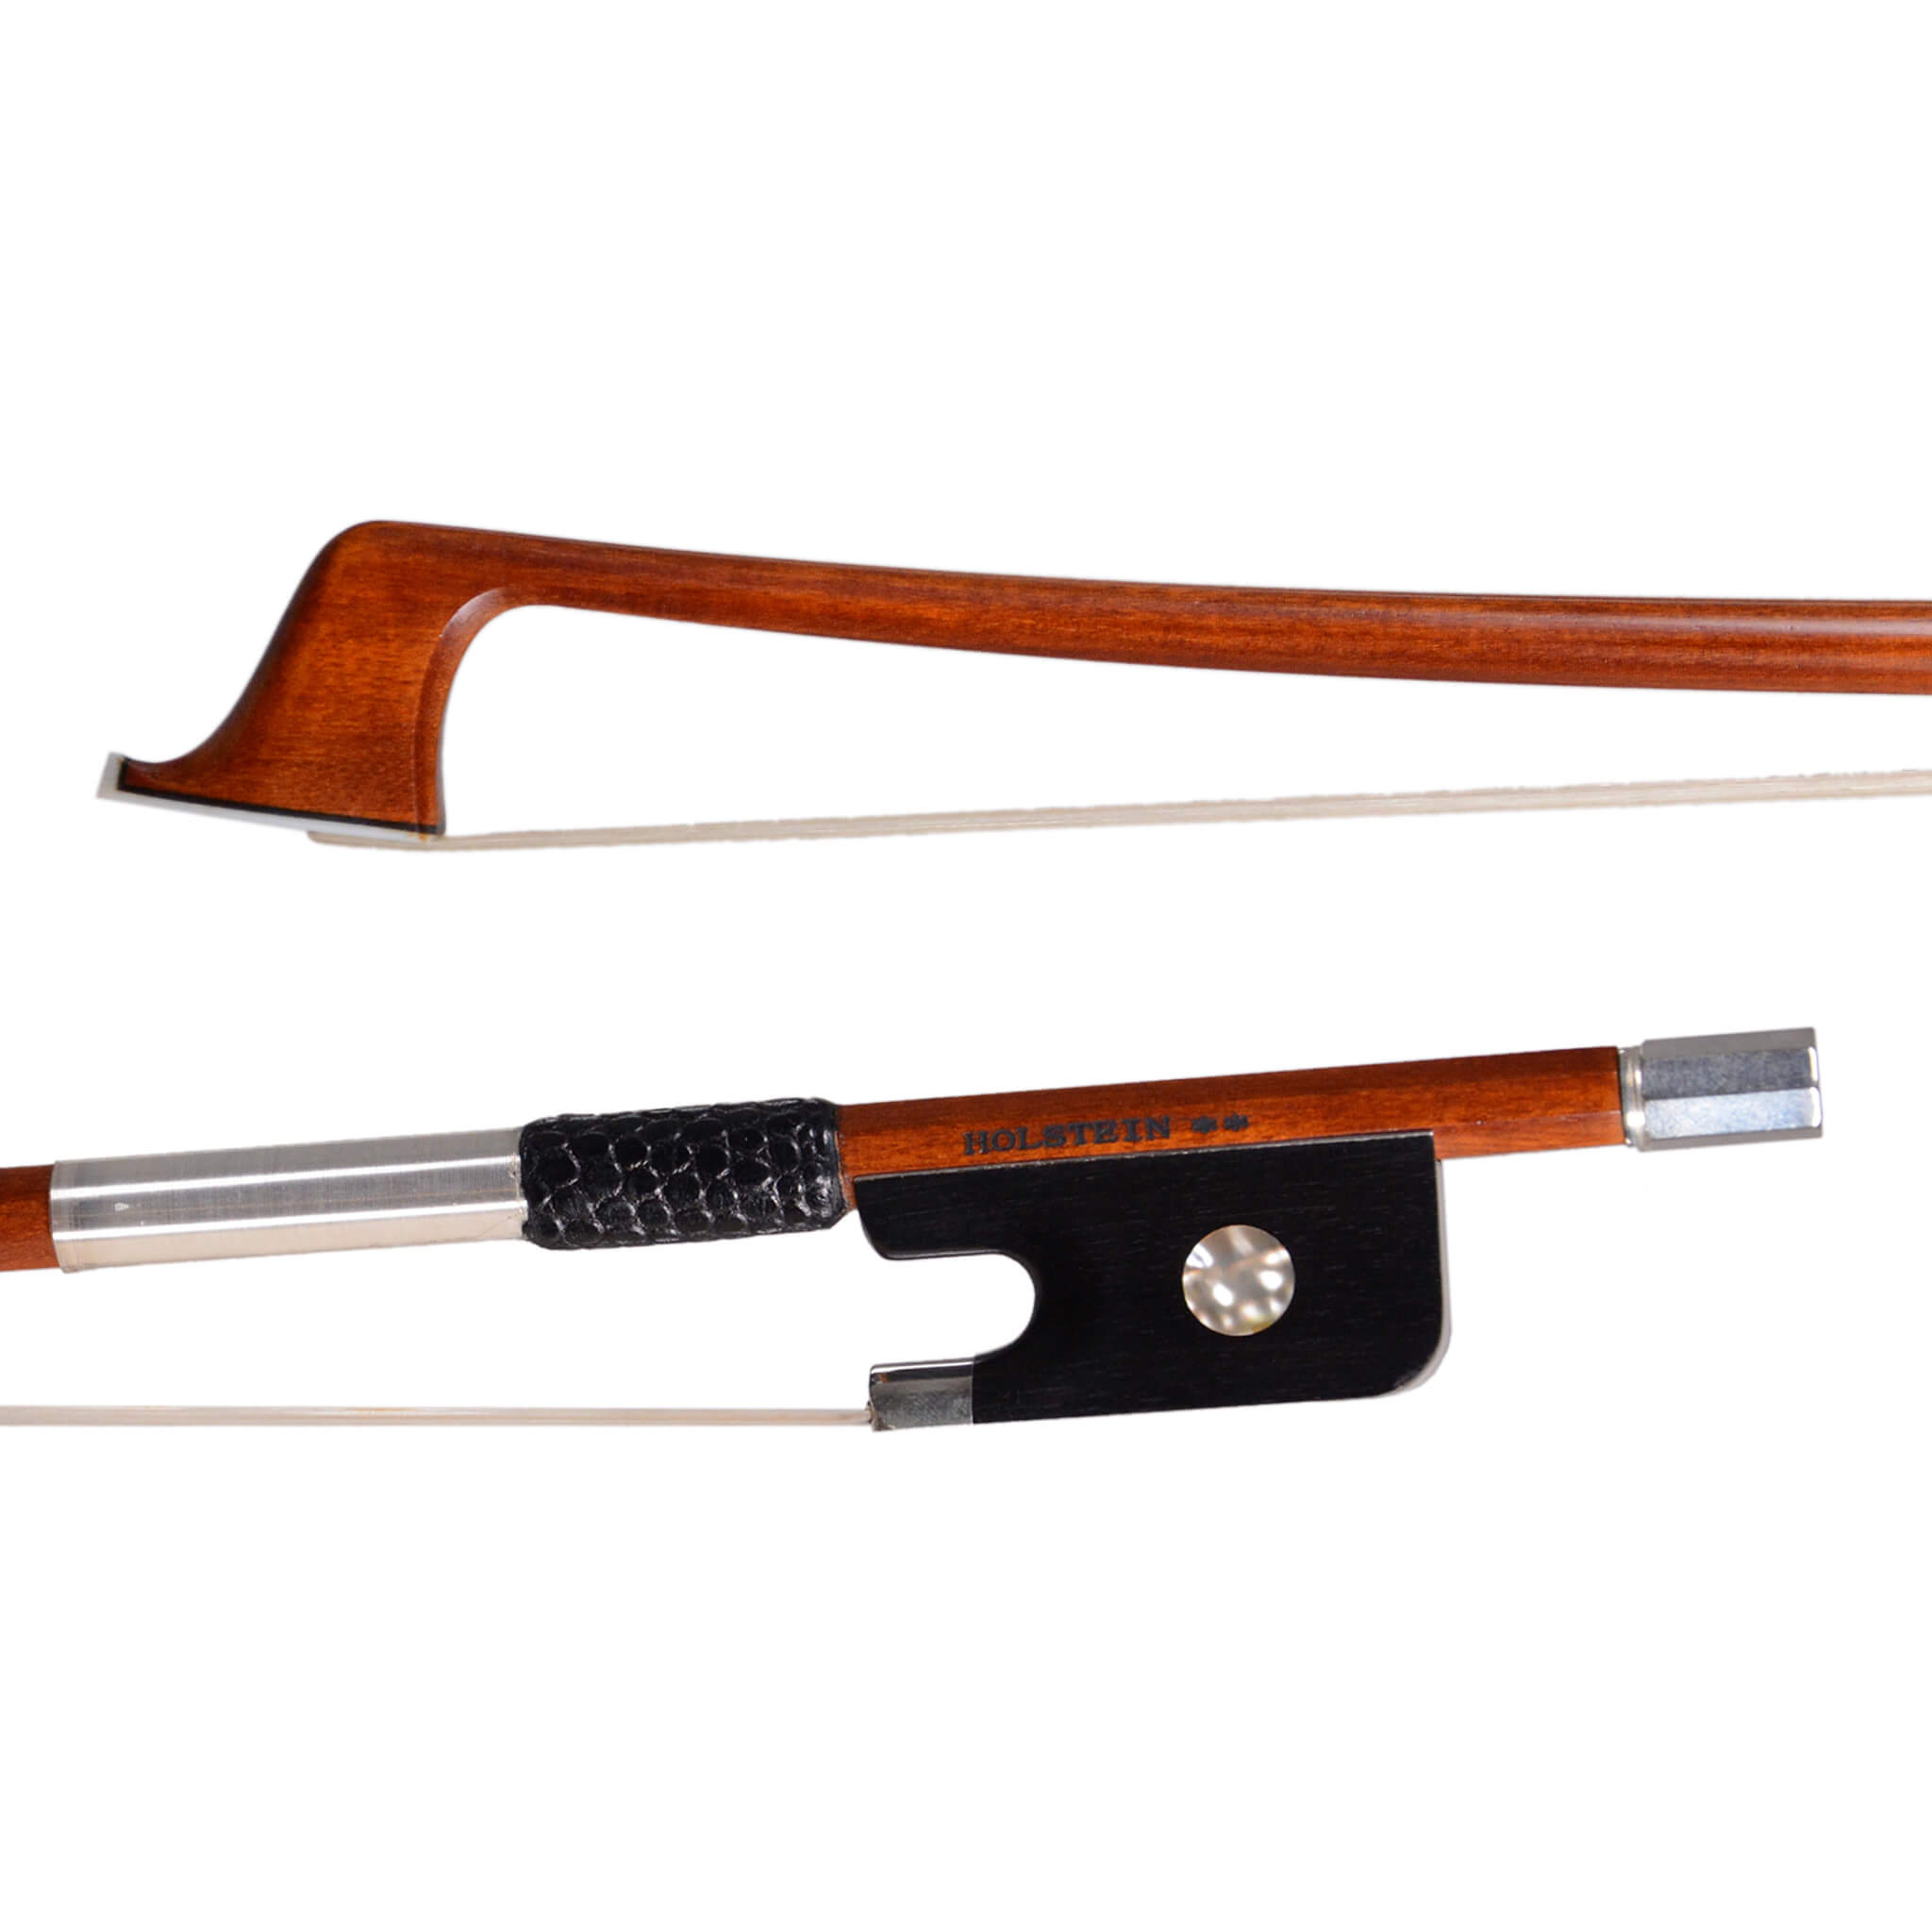 Holstein 2-star Pernambuco Cello Bow